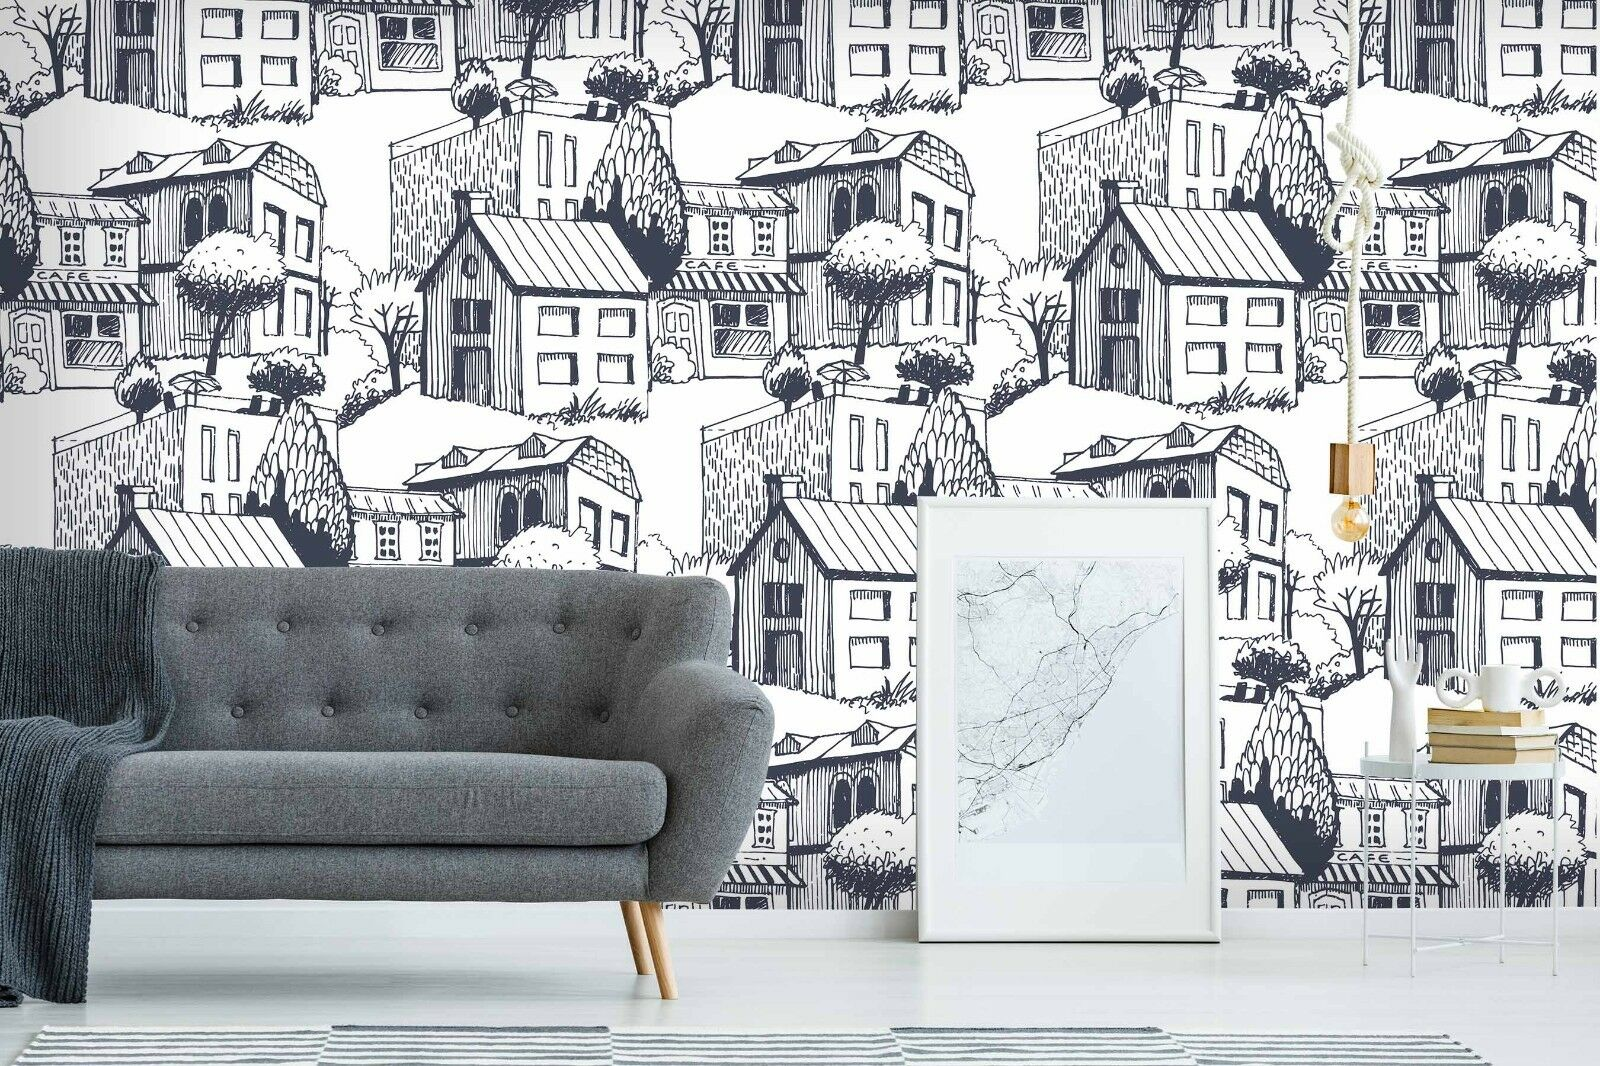 3D City House 753 Wall Paper Print Wall Decal Deco Indoor Wall Murals US Summer